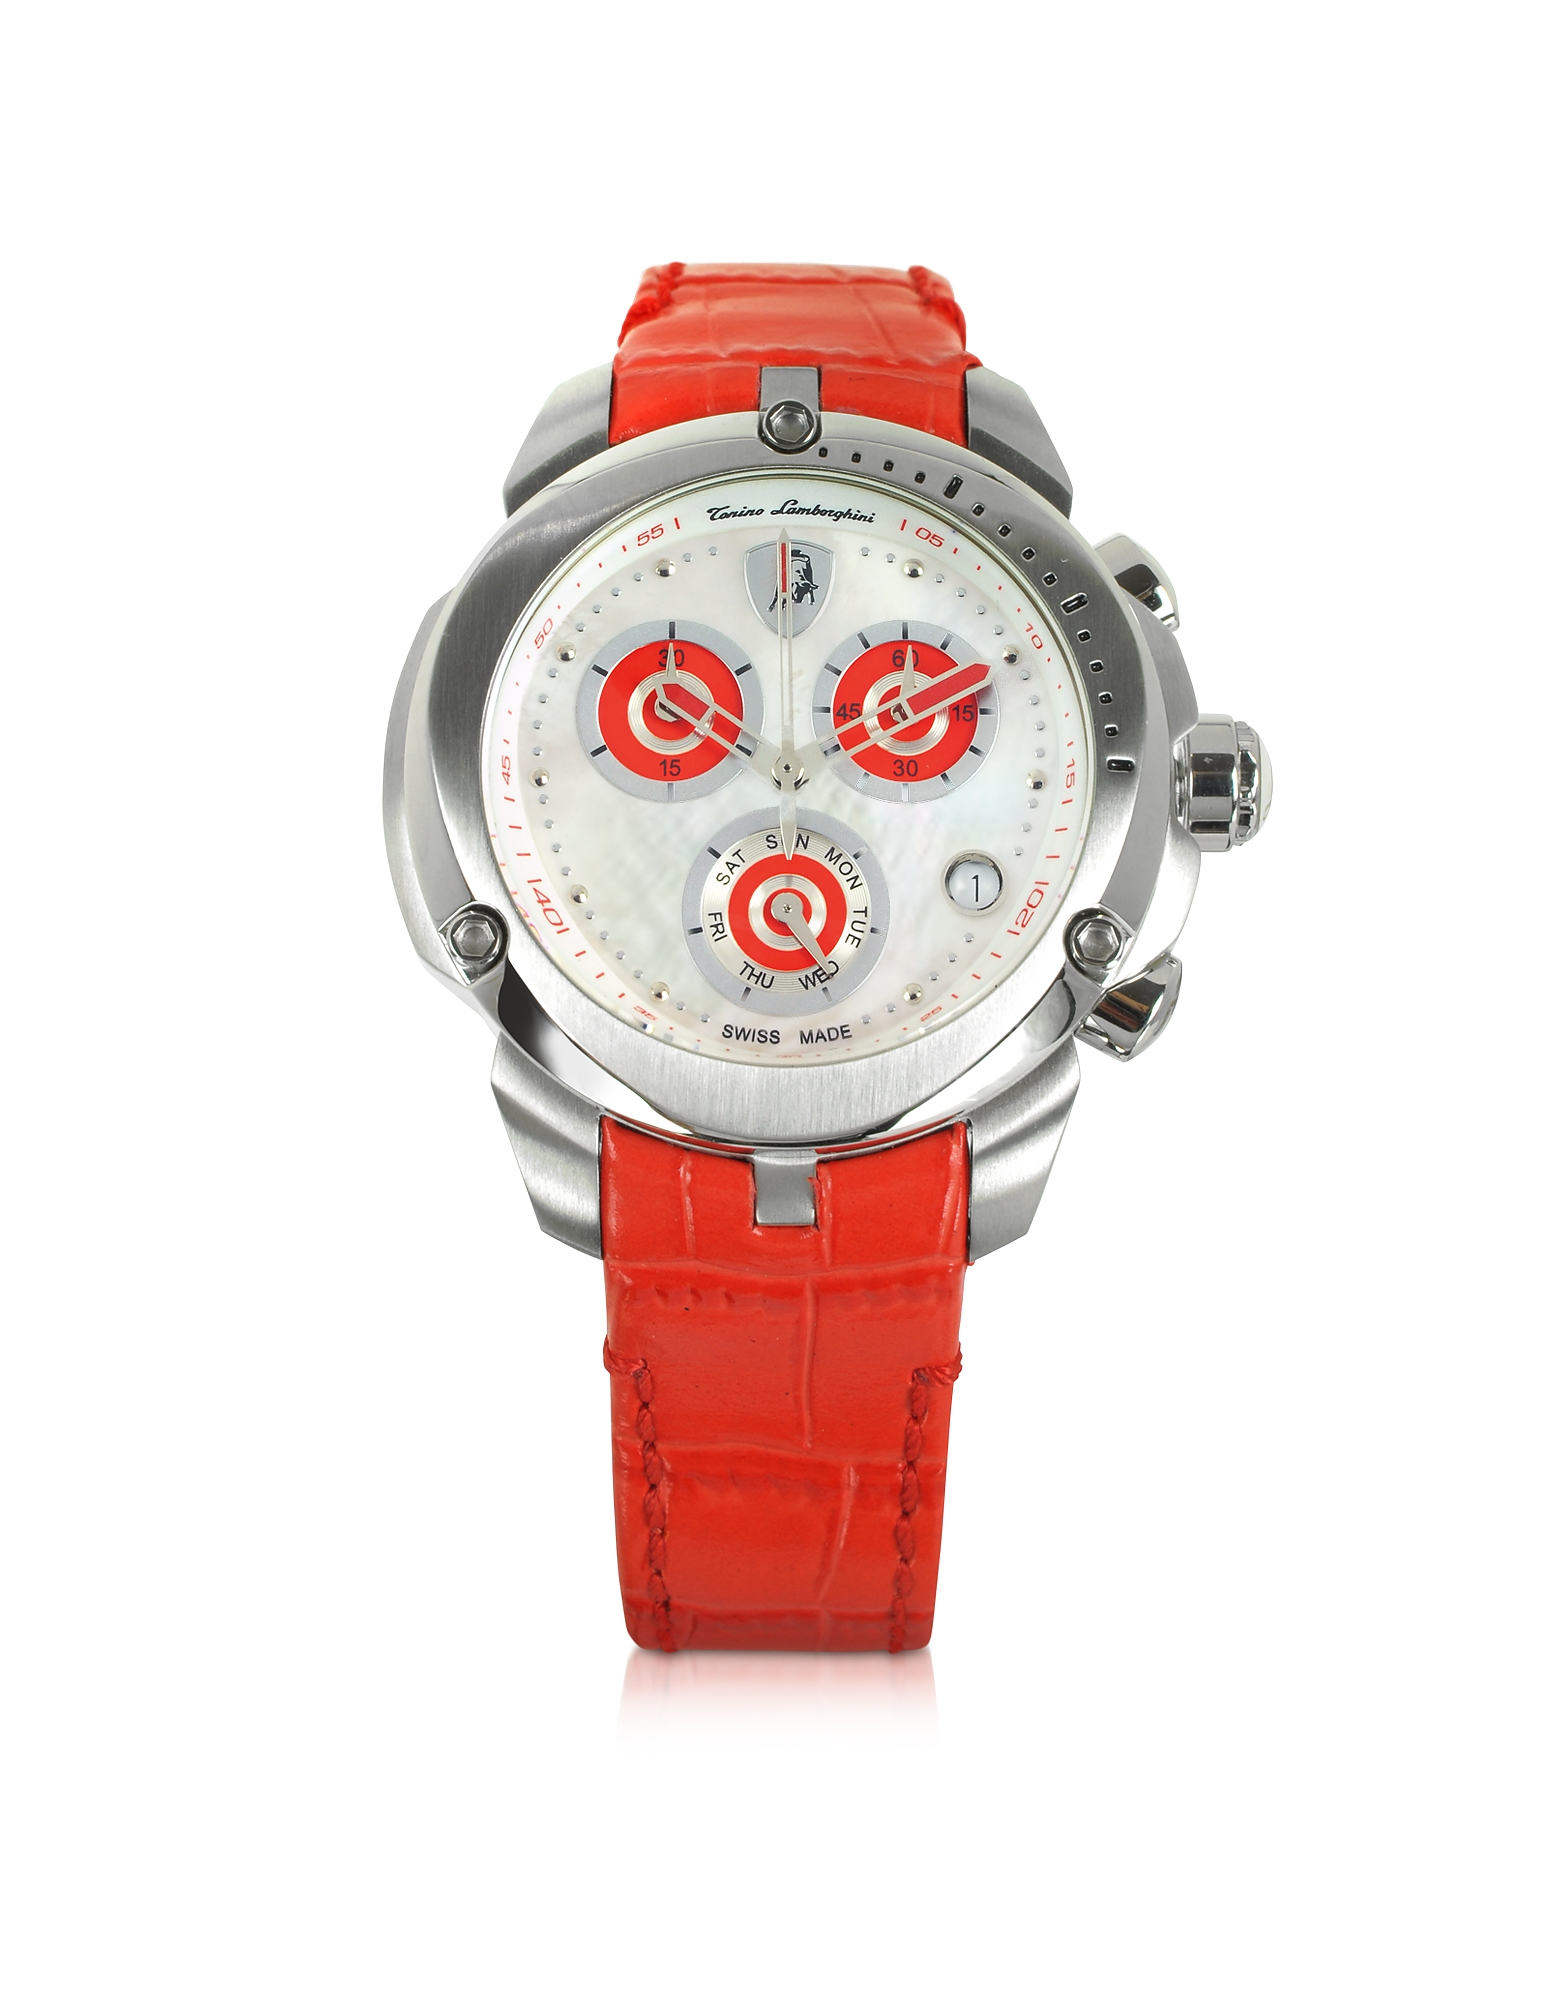 Tonino Lamborghini Women's Watches, Shield Lady Silver Tone Stainless Steel and Red Croco Print Leat